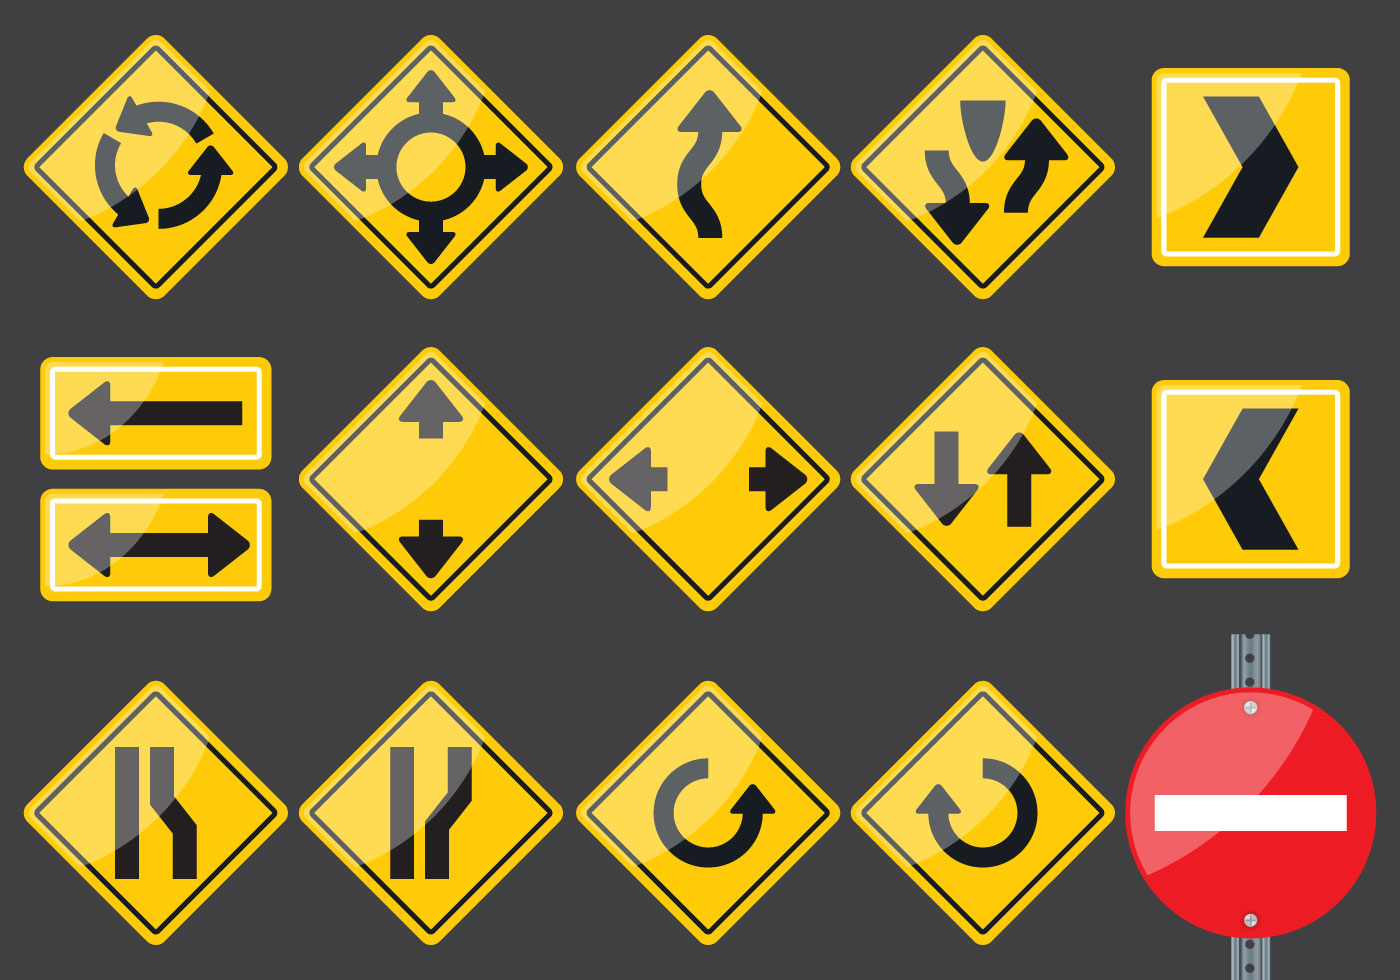 Transit Signs  Download Free Vector Art, Stock Graphics. Career Signs Of Stroke. Pisce Signs. Back Signs. Narcissistic Signs Of Stroke. Cream Signs. Glyphosate Signs. Programmed Signs Of Stroke. Cope Signs Of Stroke